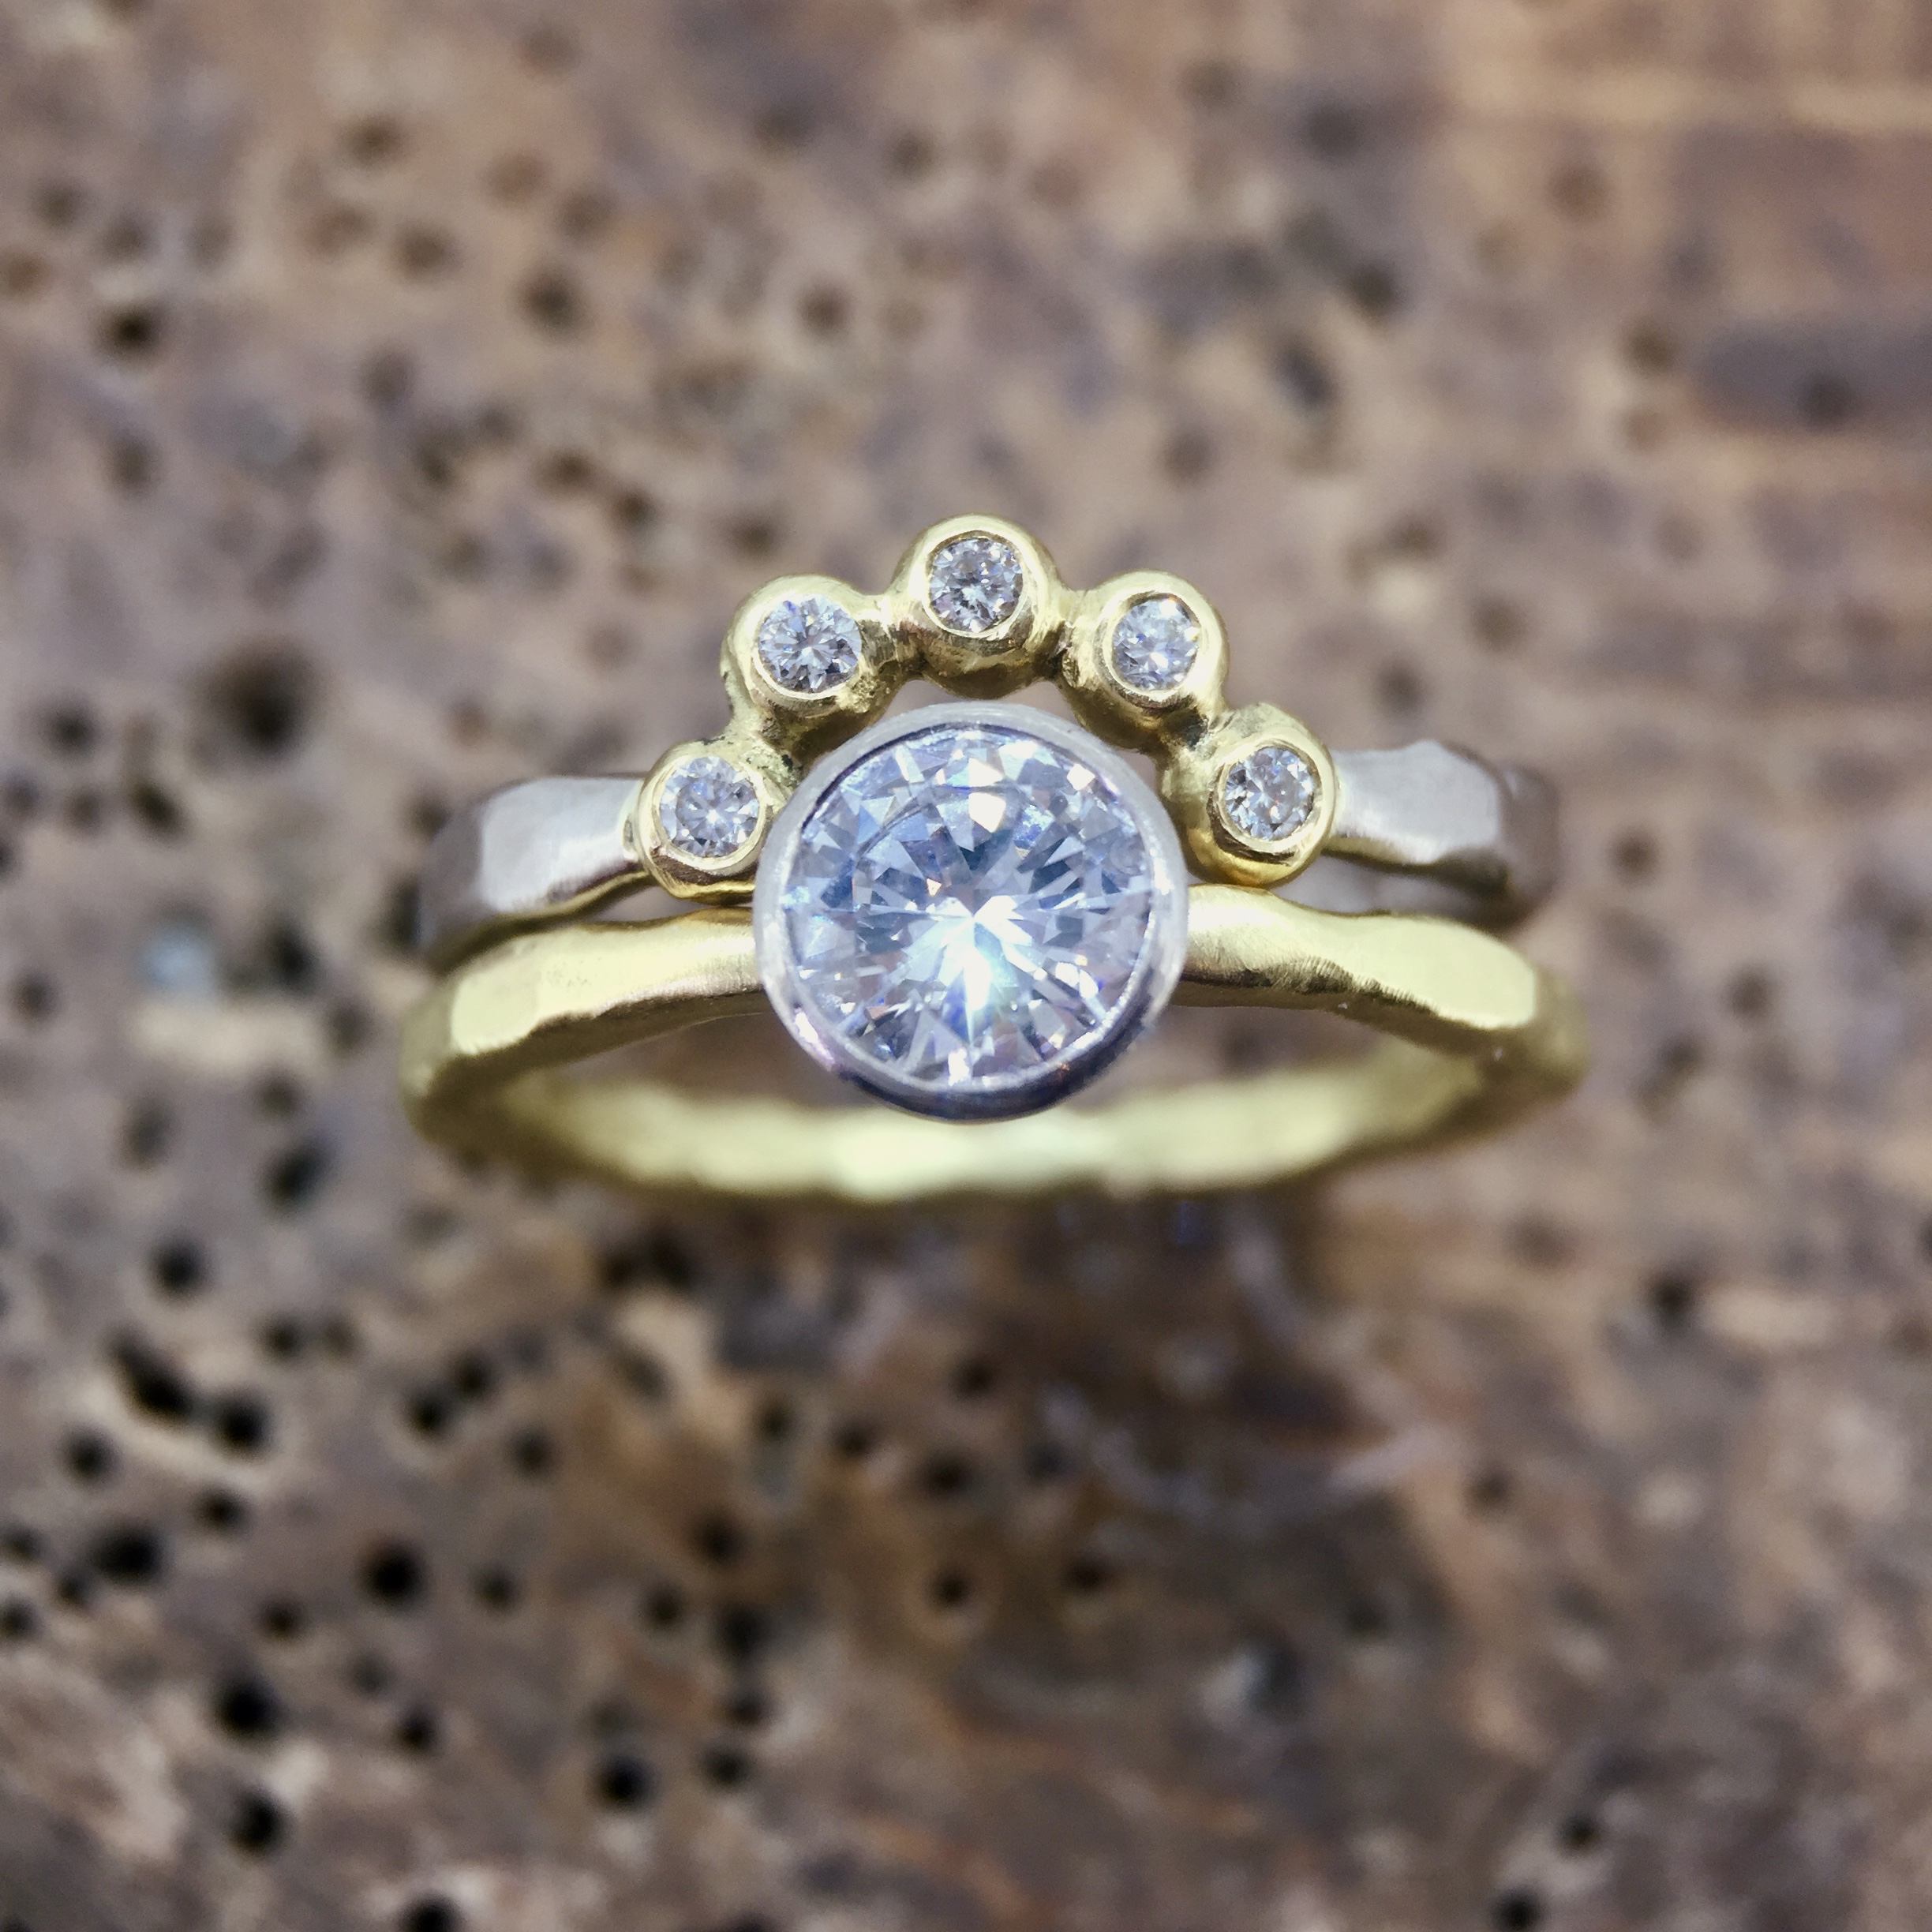 Diamond Tiara Ring in 18ct White and Yellow Fair Trade Gold